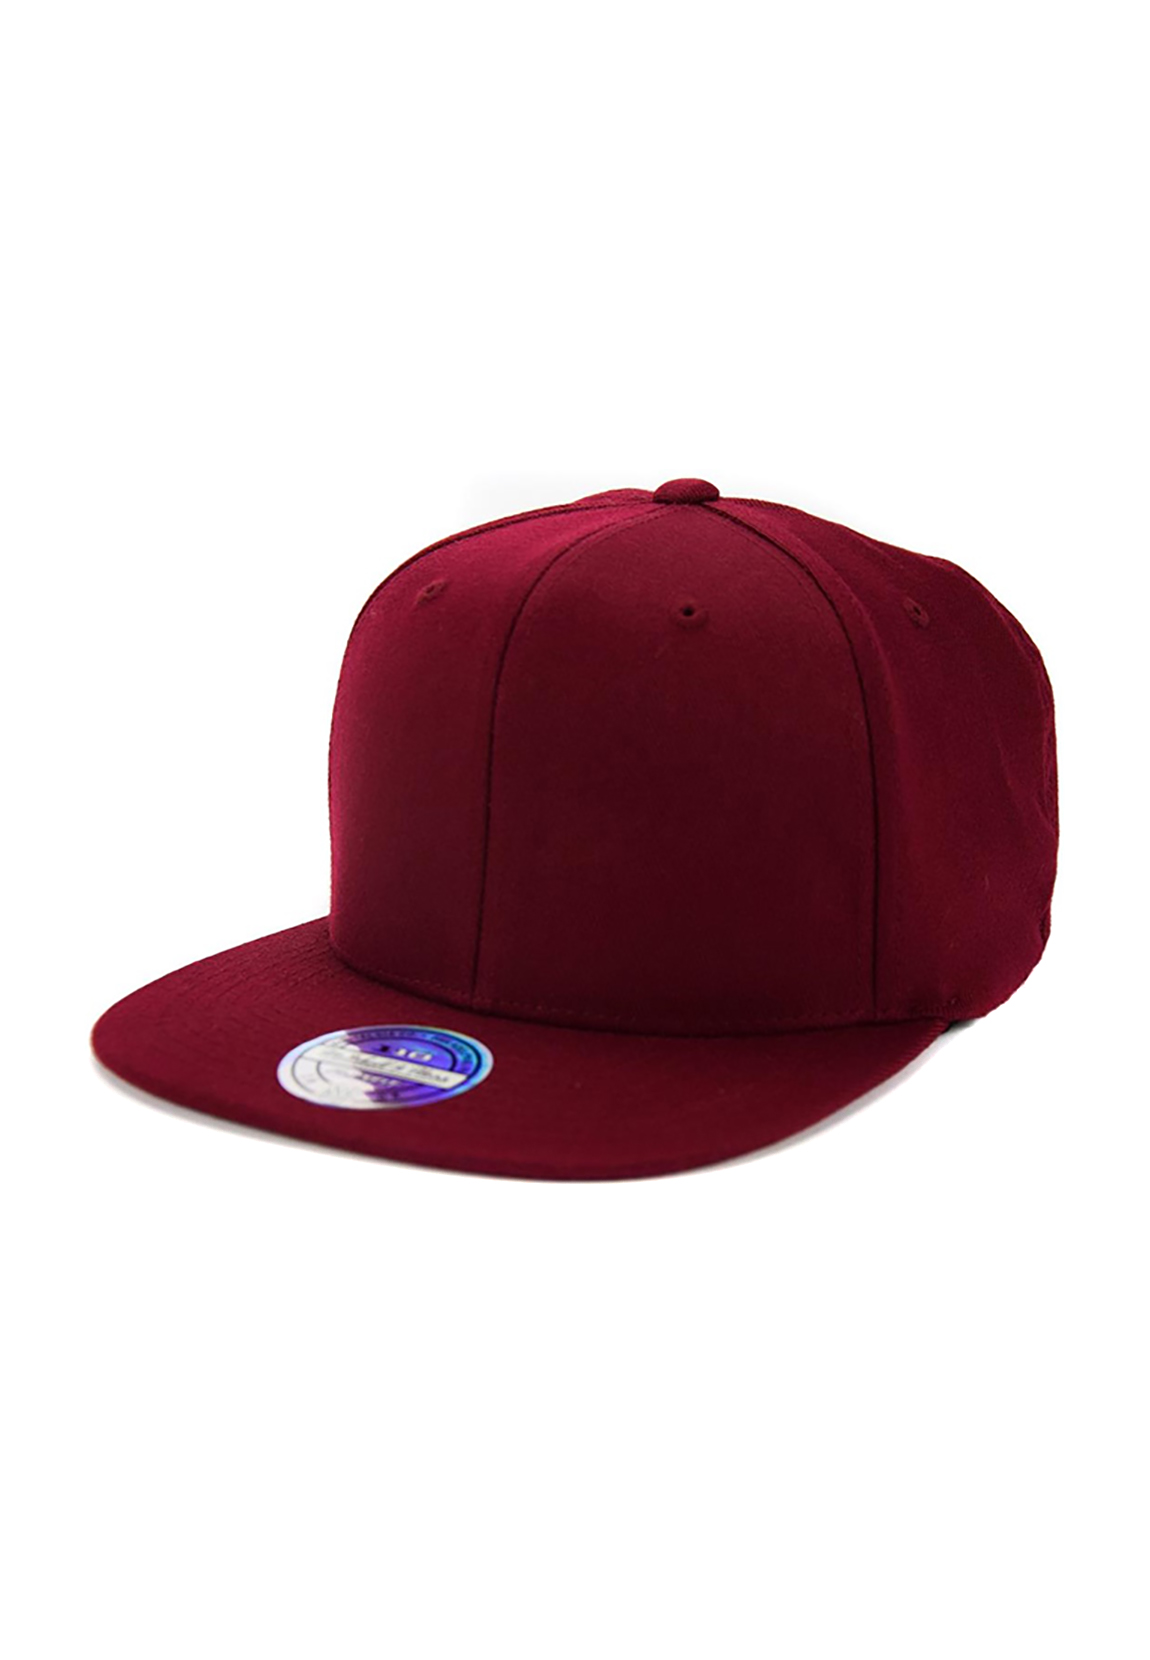 e302903465758 Details about Mitchell   Ness Snapback Cap INTL211 Blank Dark Red